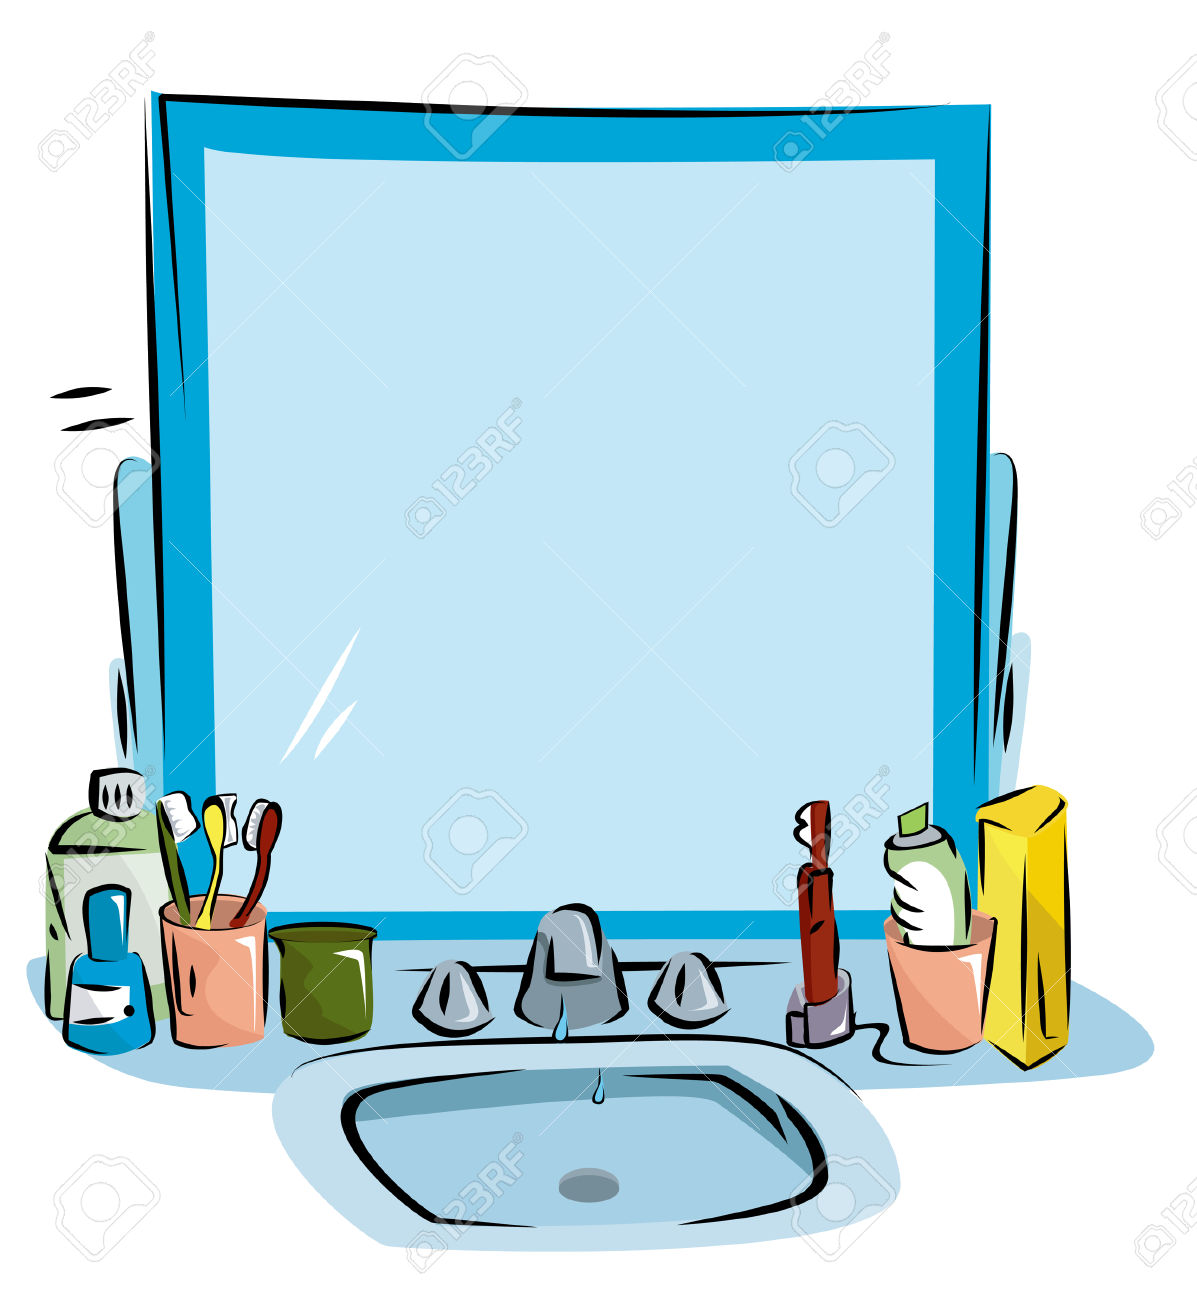 Bathroom Clip Art Free: Free Download Best Cleaning